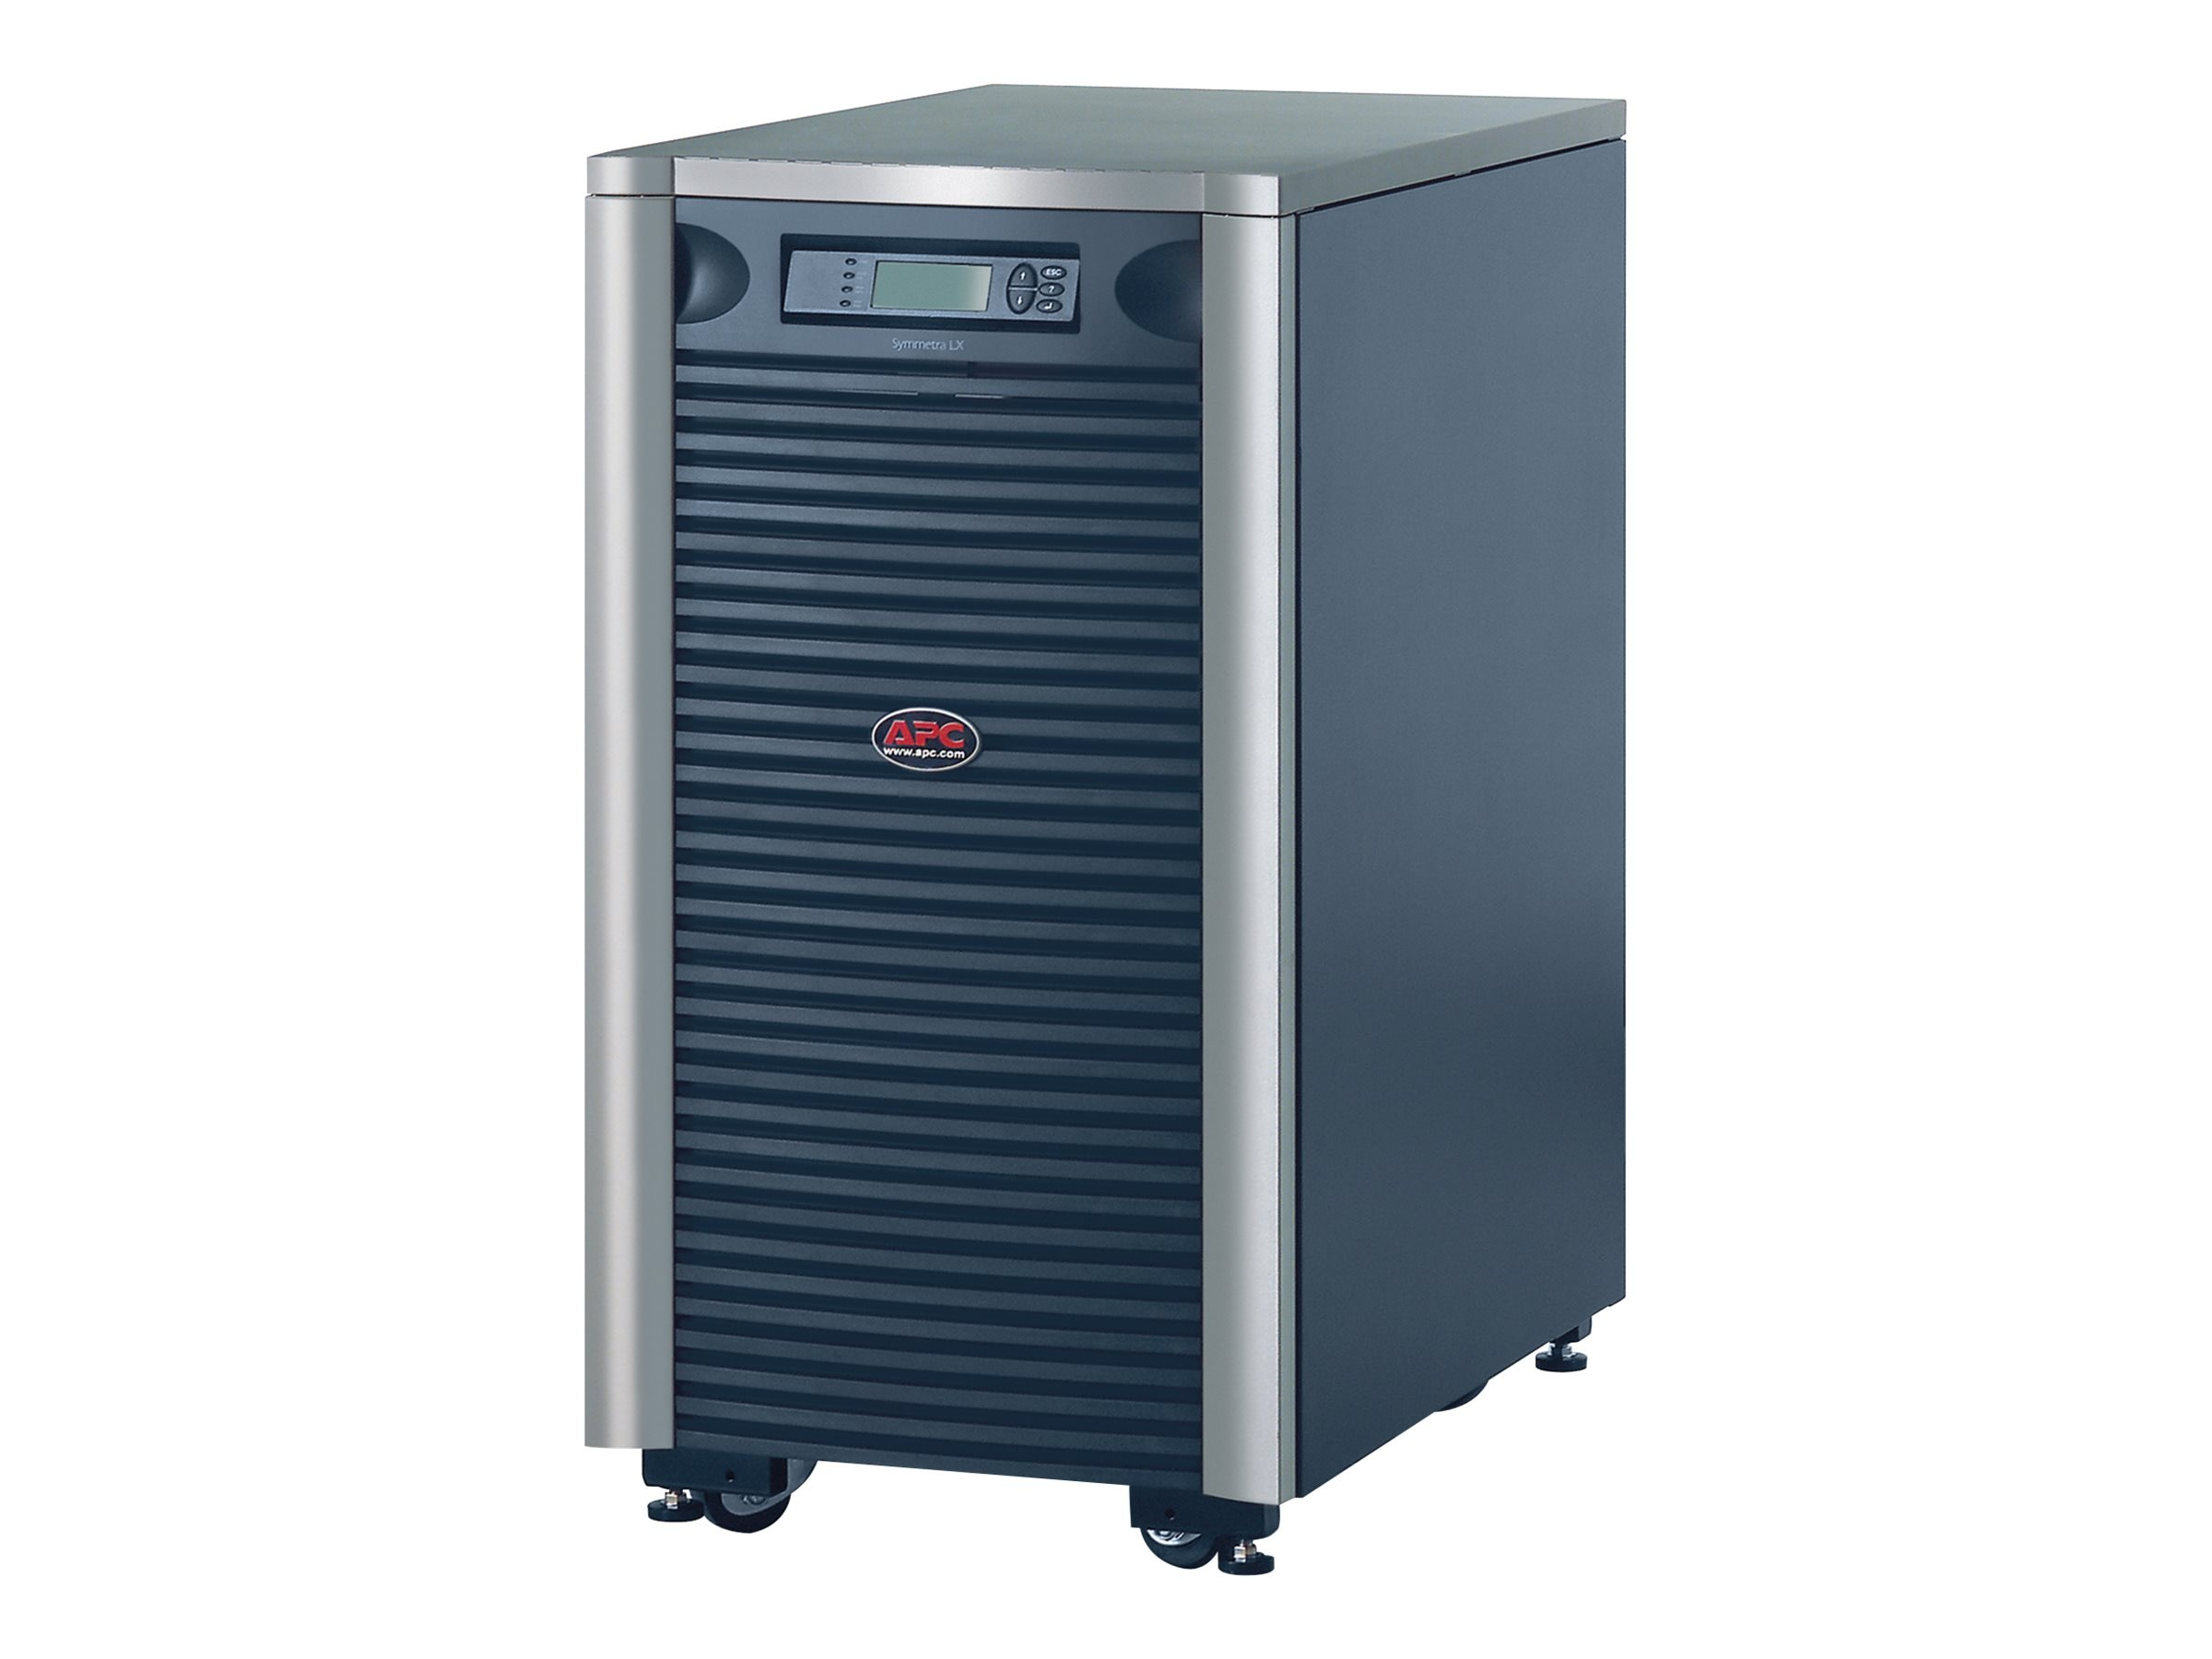 APC Symmetra LX 12KVA Scalable to 16KVA N+1 Extended Run Tower, 208 240V Input, 208V 240V 120V Output, SYA12K16PXR, 4926185, Battery Backup/UPS